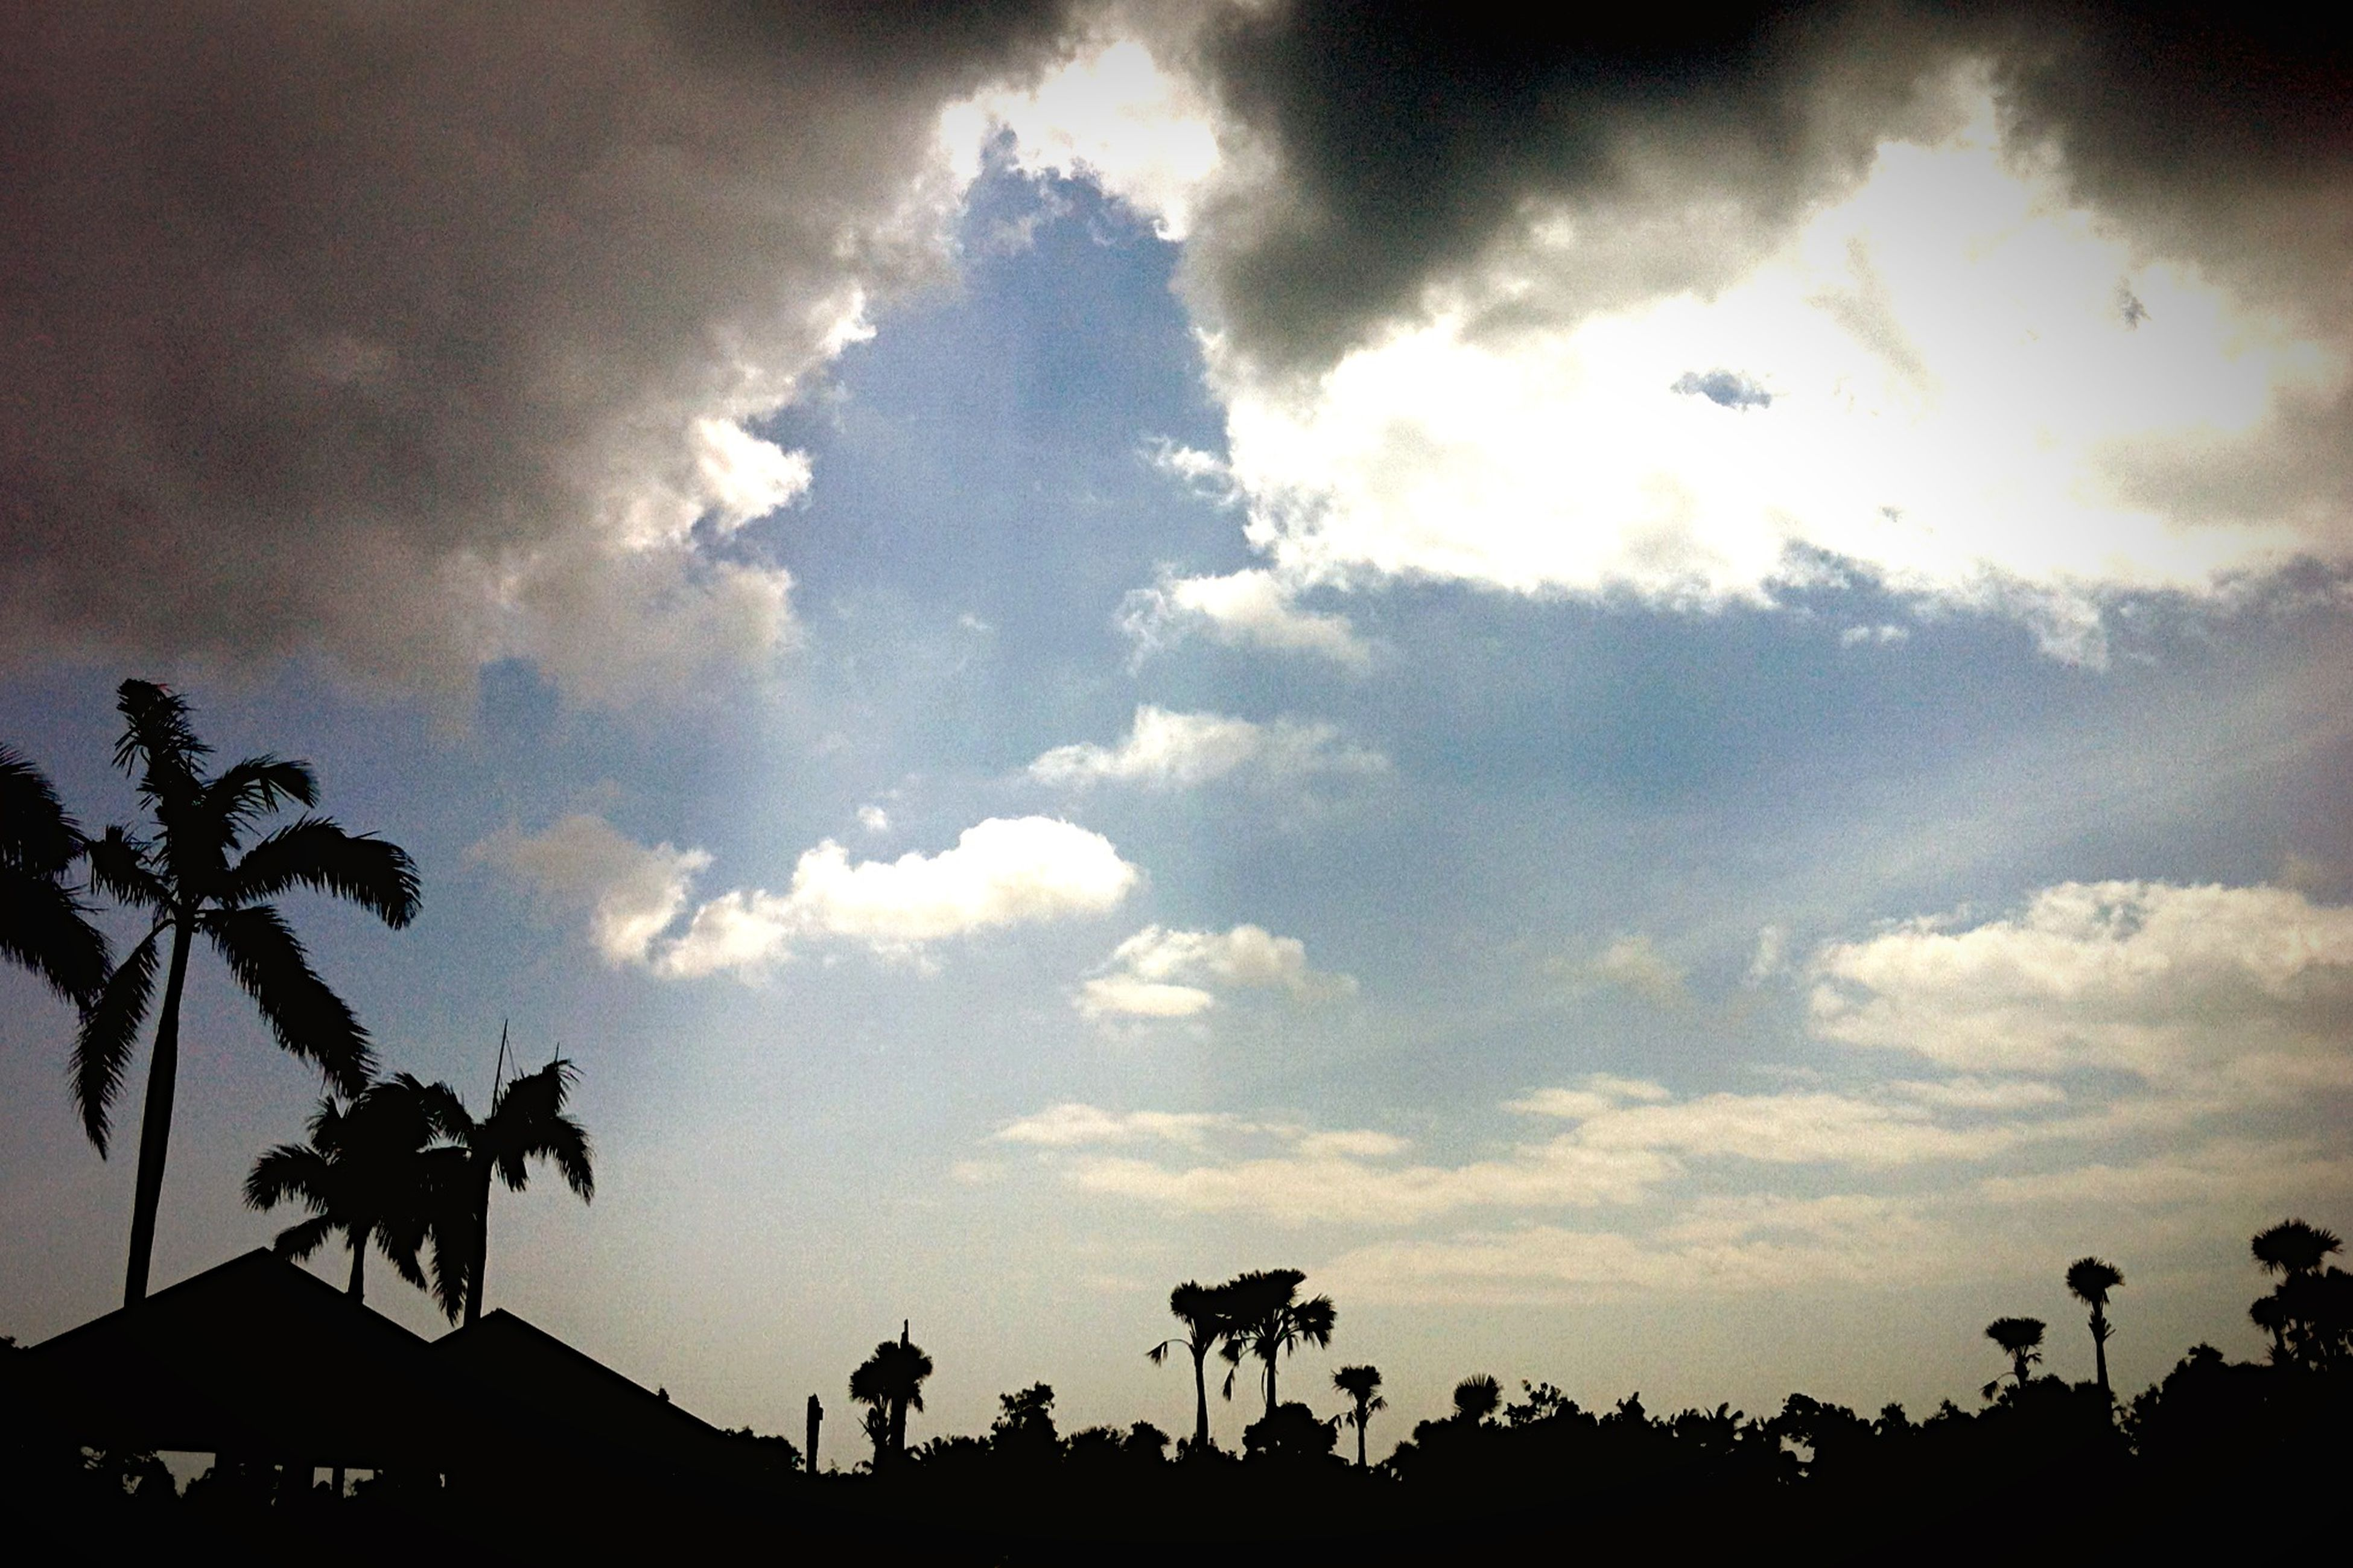 sky, silhouette, cloud - sky, low angle view, tree, cloudy, beauty in nature, cloud, nature, tranquility, scenics, sunset, tranquil scene, dusk, growth, outdoors, outline, palm tree, no people, idyllic